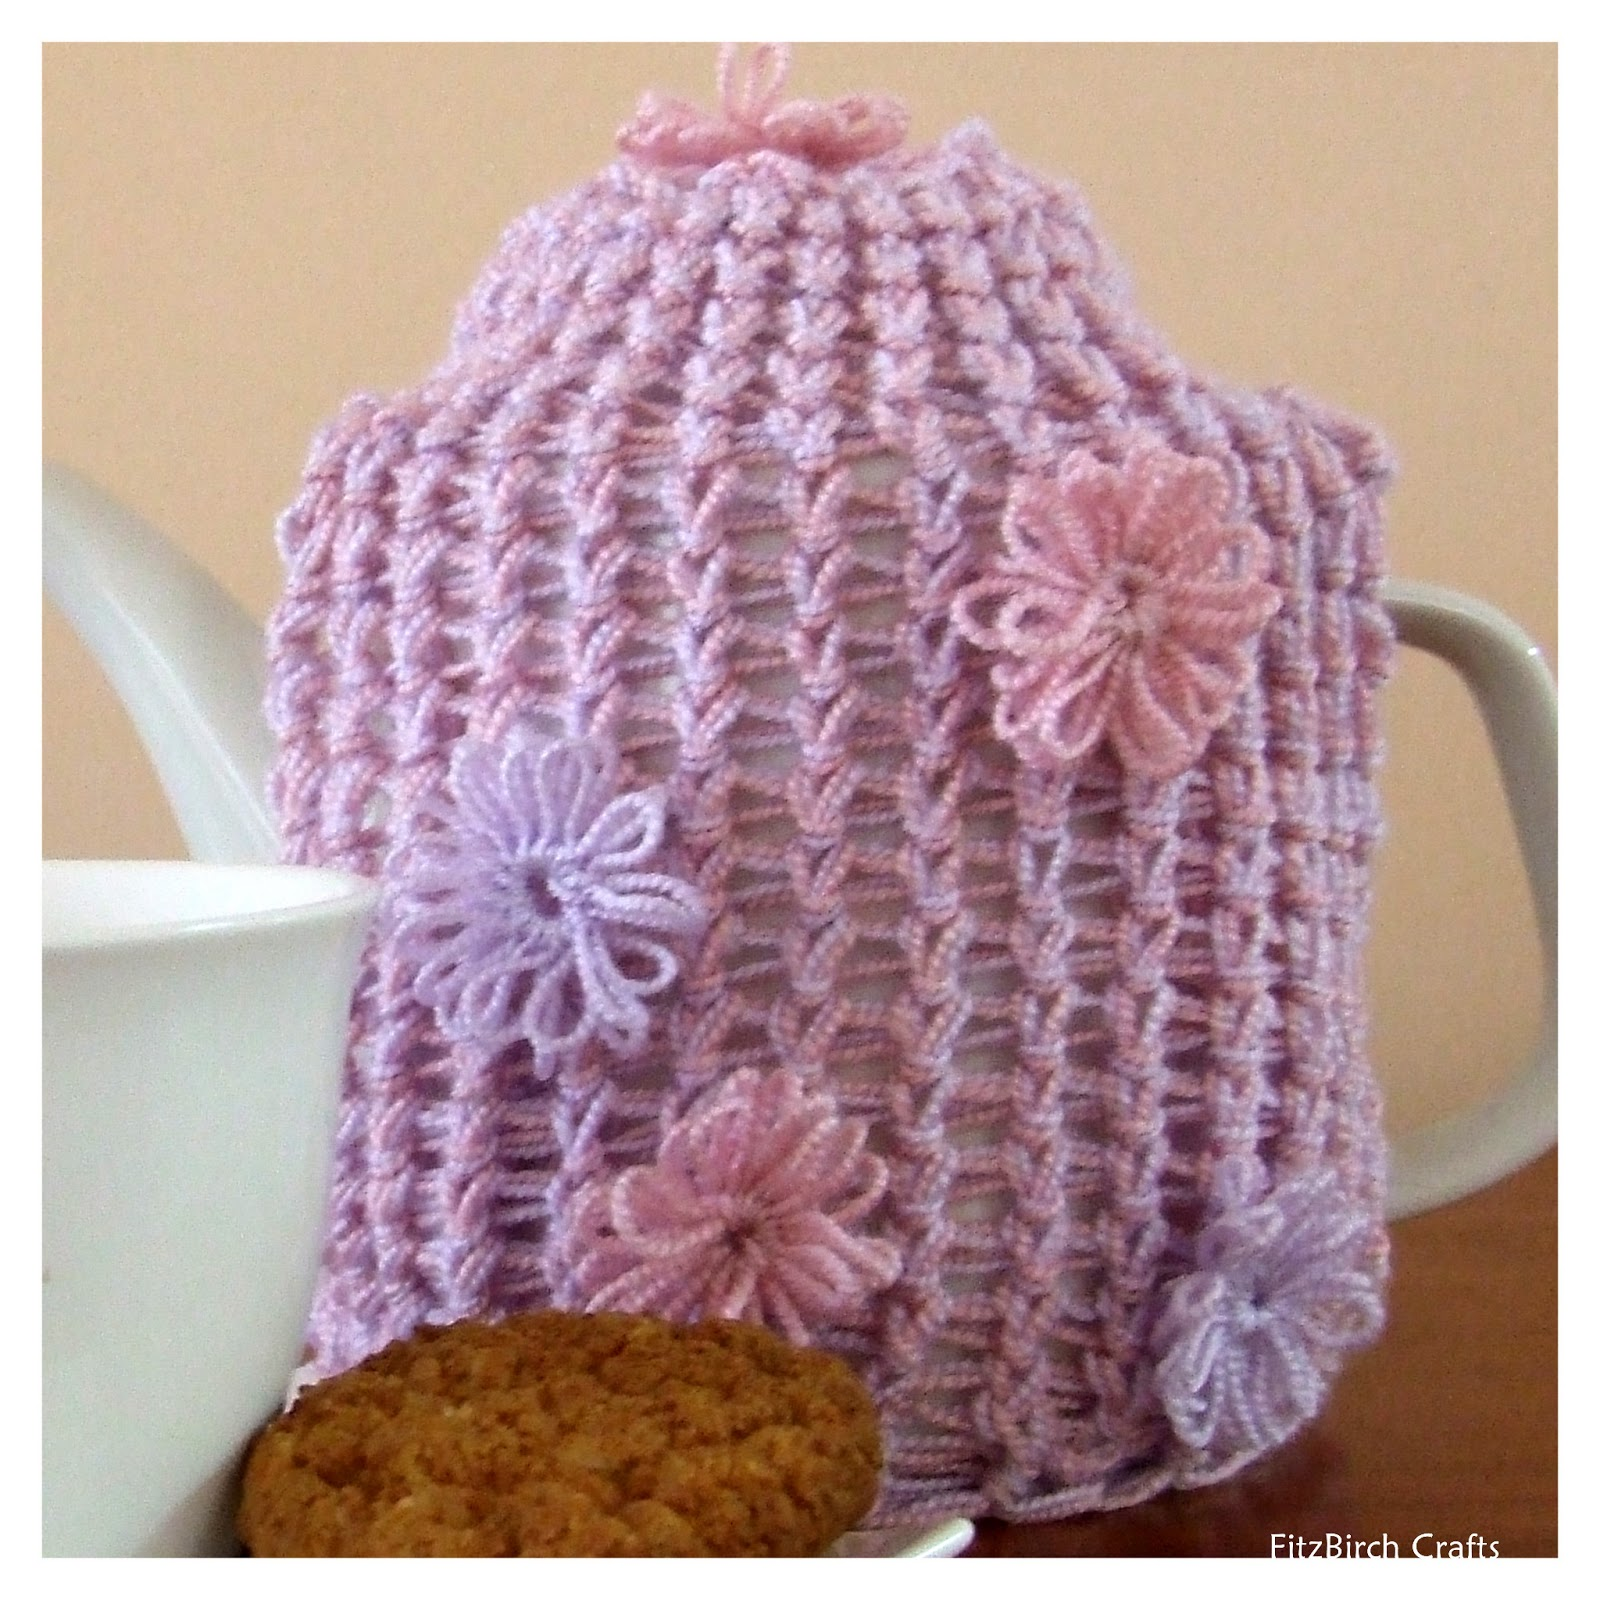 Knitting Loom Ideas : Fitzbirch crafts loom knit tea cosy